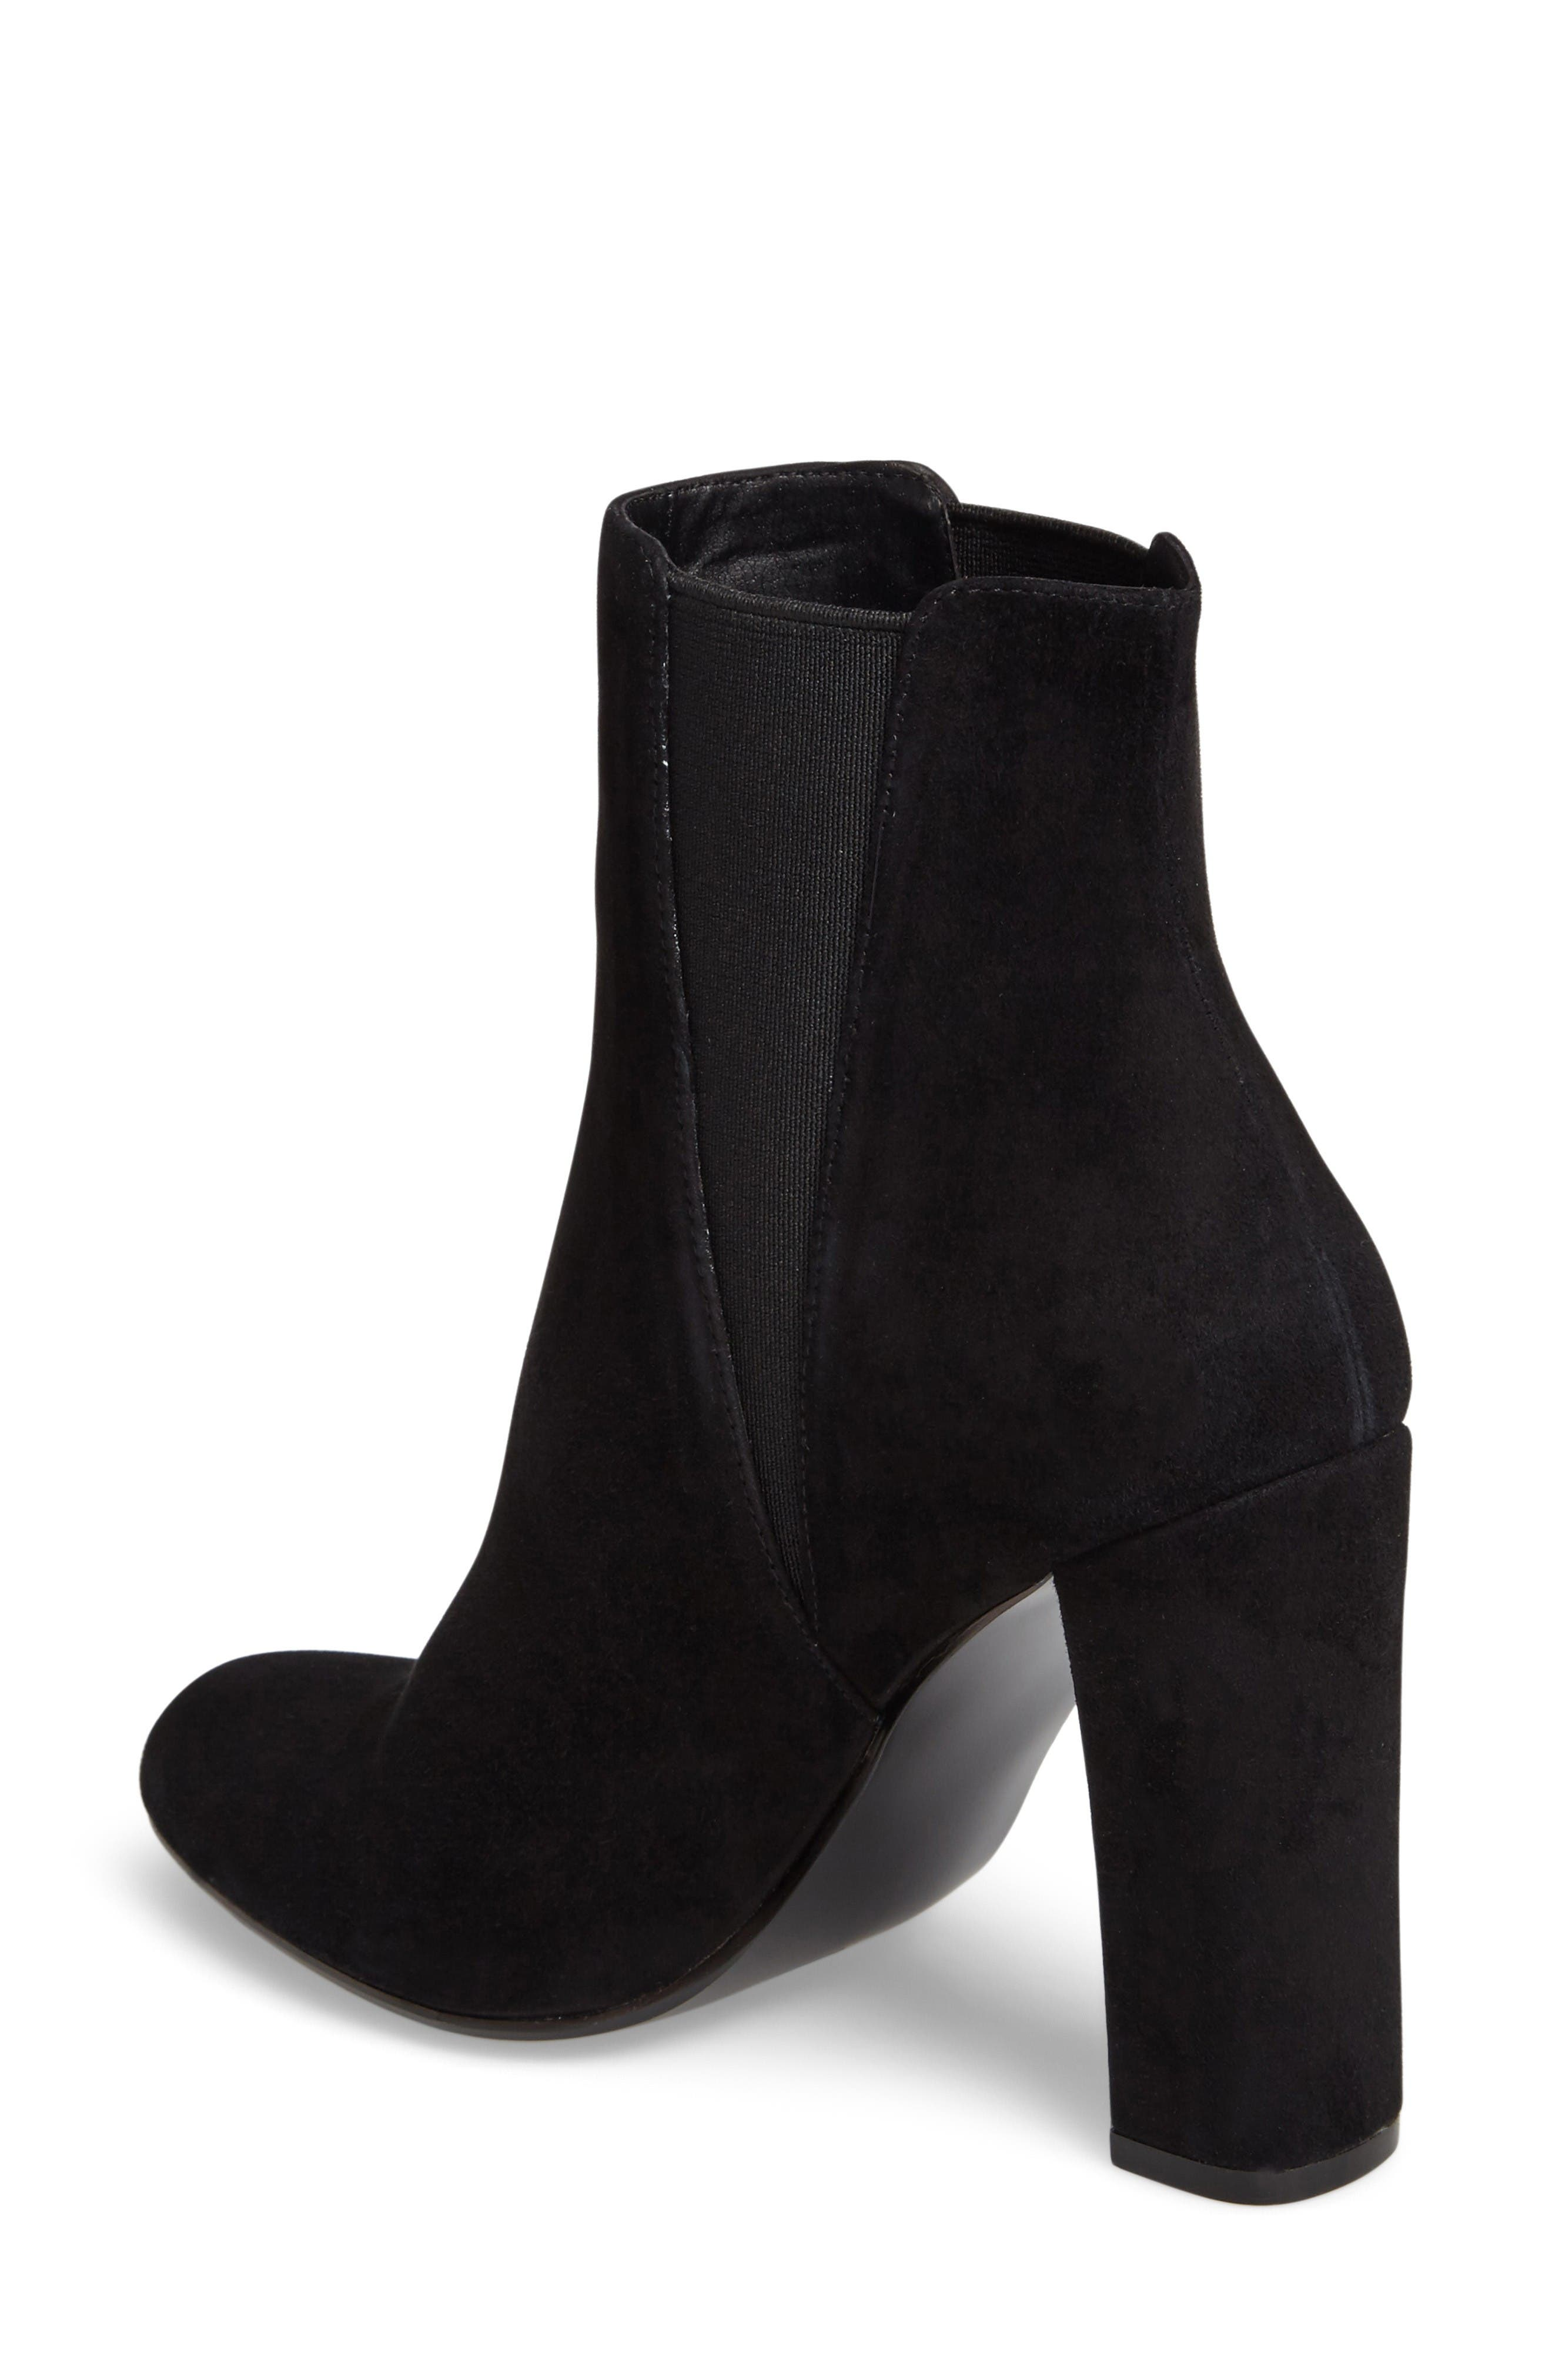 Alternate Image 2  - Steve Madden Effect Block Heel Bootie (Women)